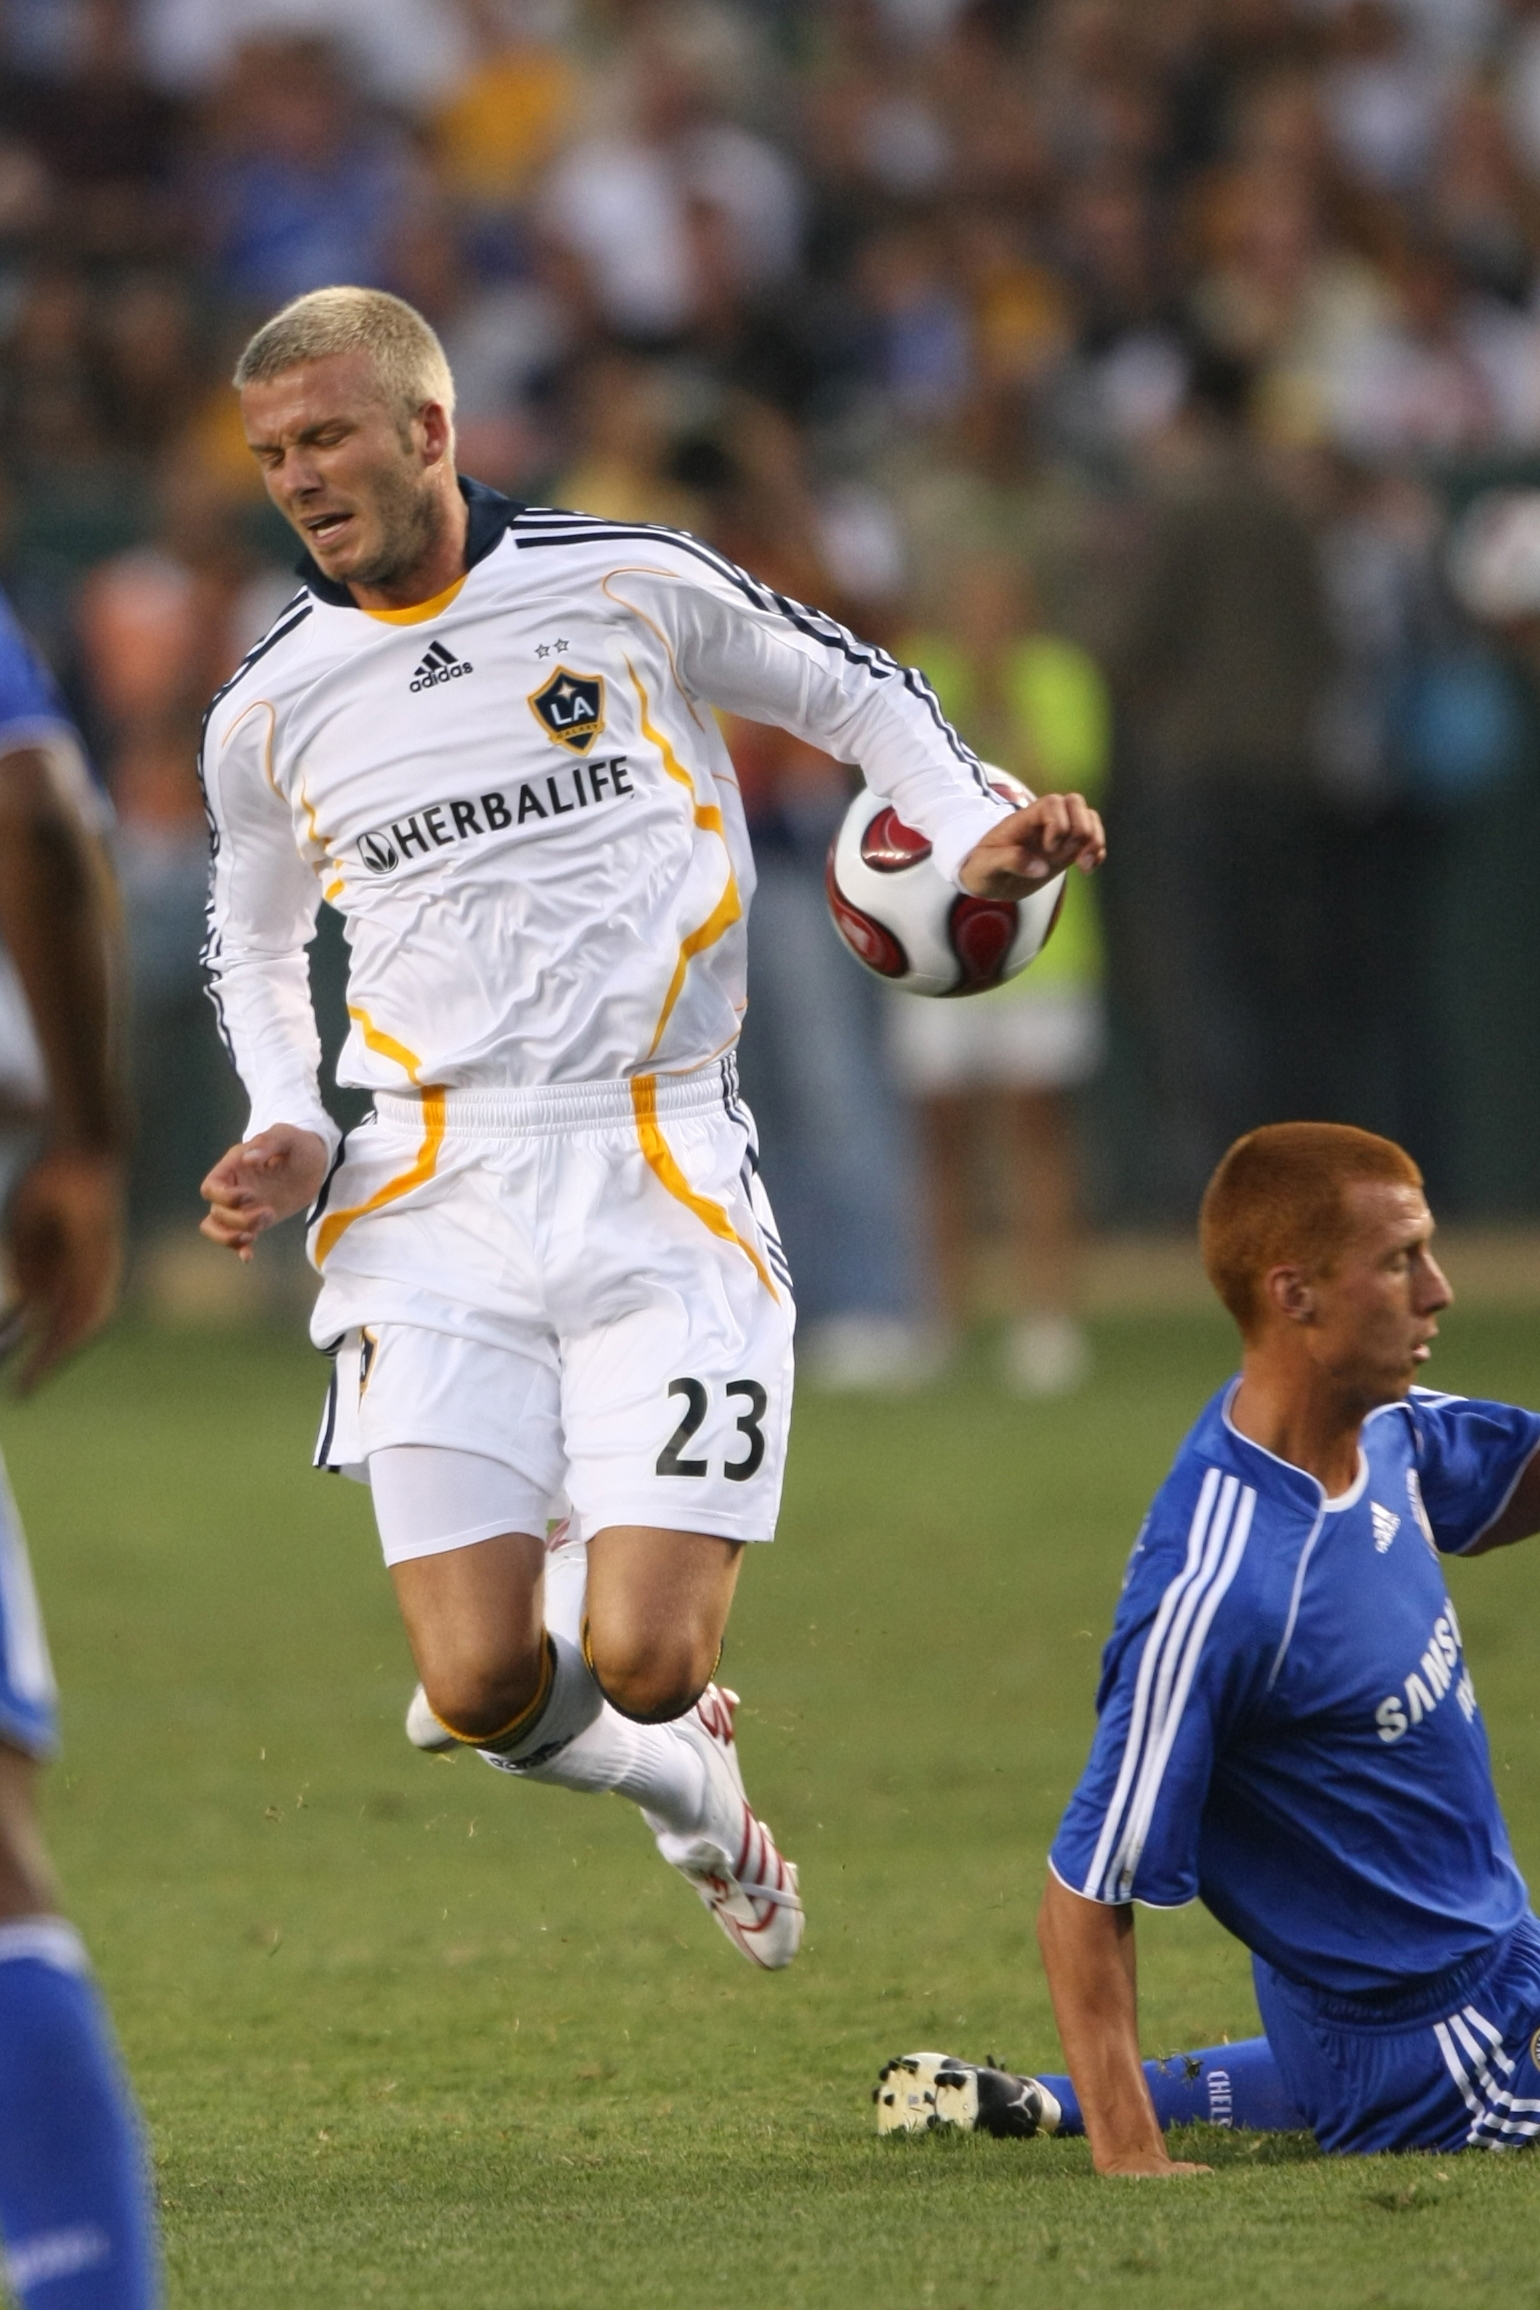 David Beckham (23) of Los Angeles Galaxy in action during his US debut during the World Series of Soccer at the Home Depot Center (Phil Ellsworth/ESPN Images)